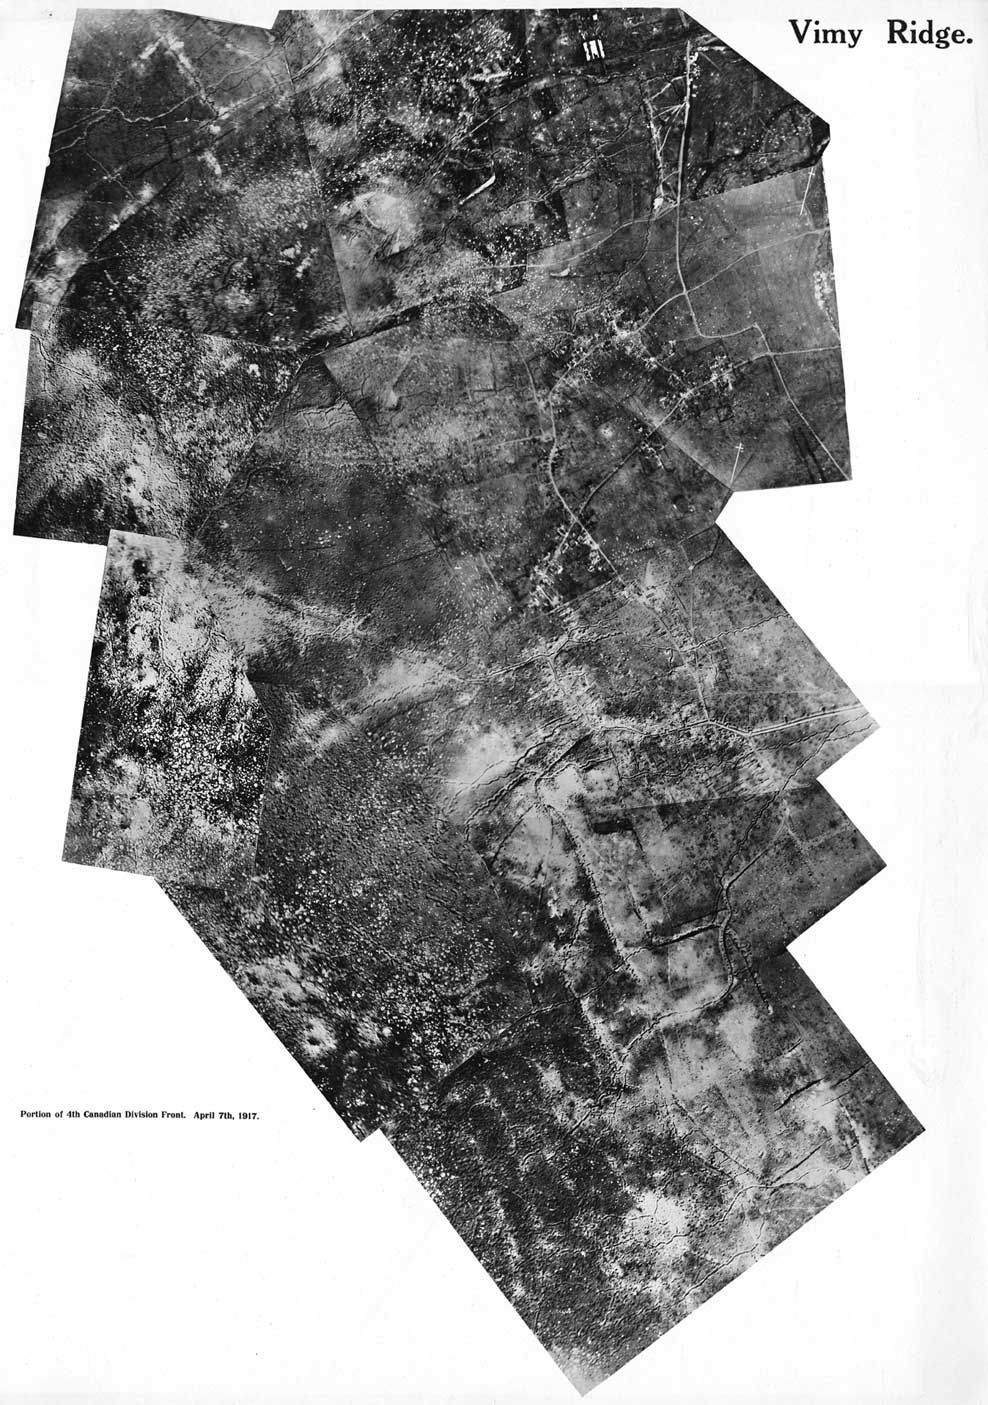 trench map an extract from a map of the vimy ridge area in mid aerial photograph of vimy ridge showing the front occupied by the 4th canadian division